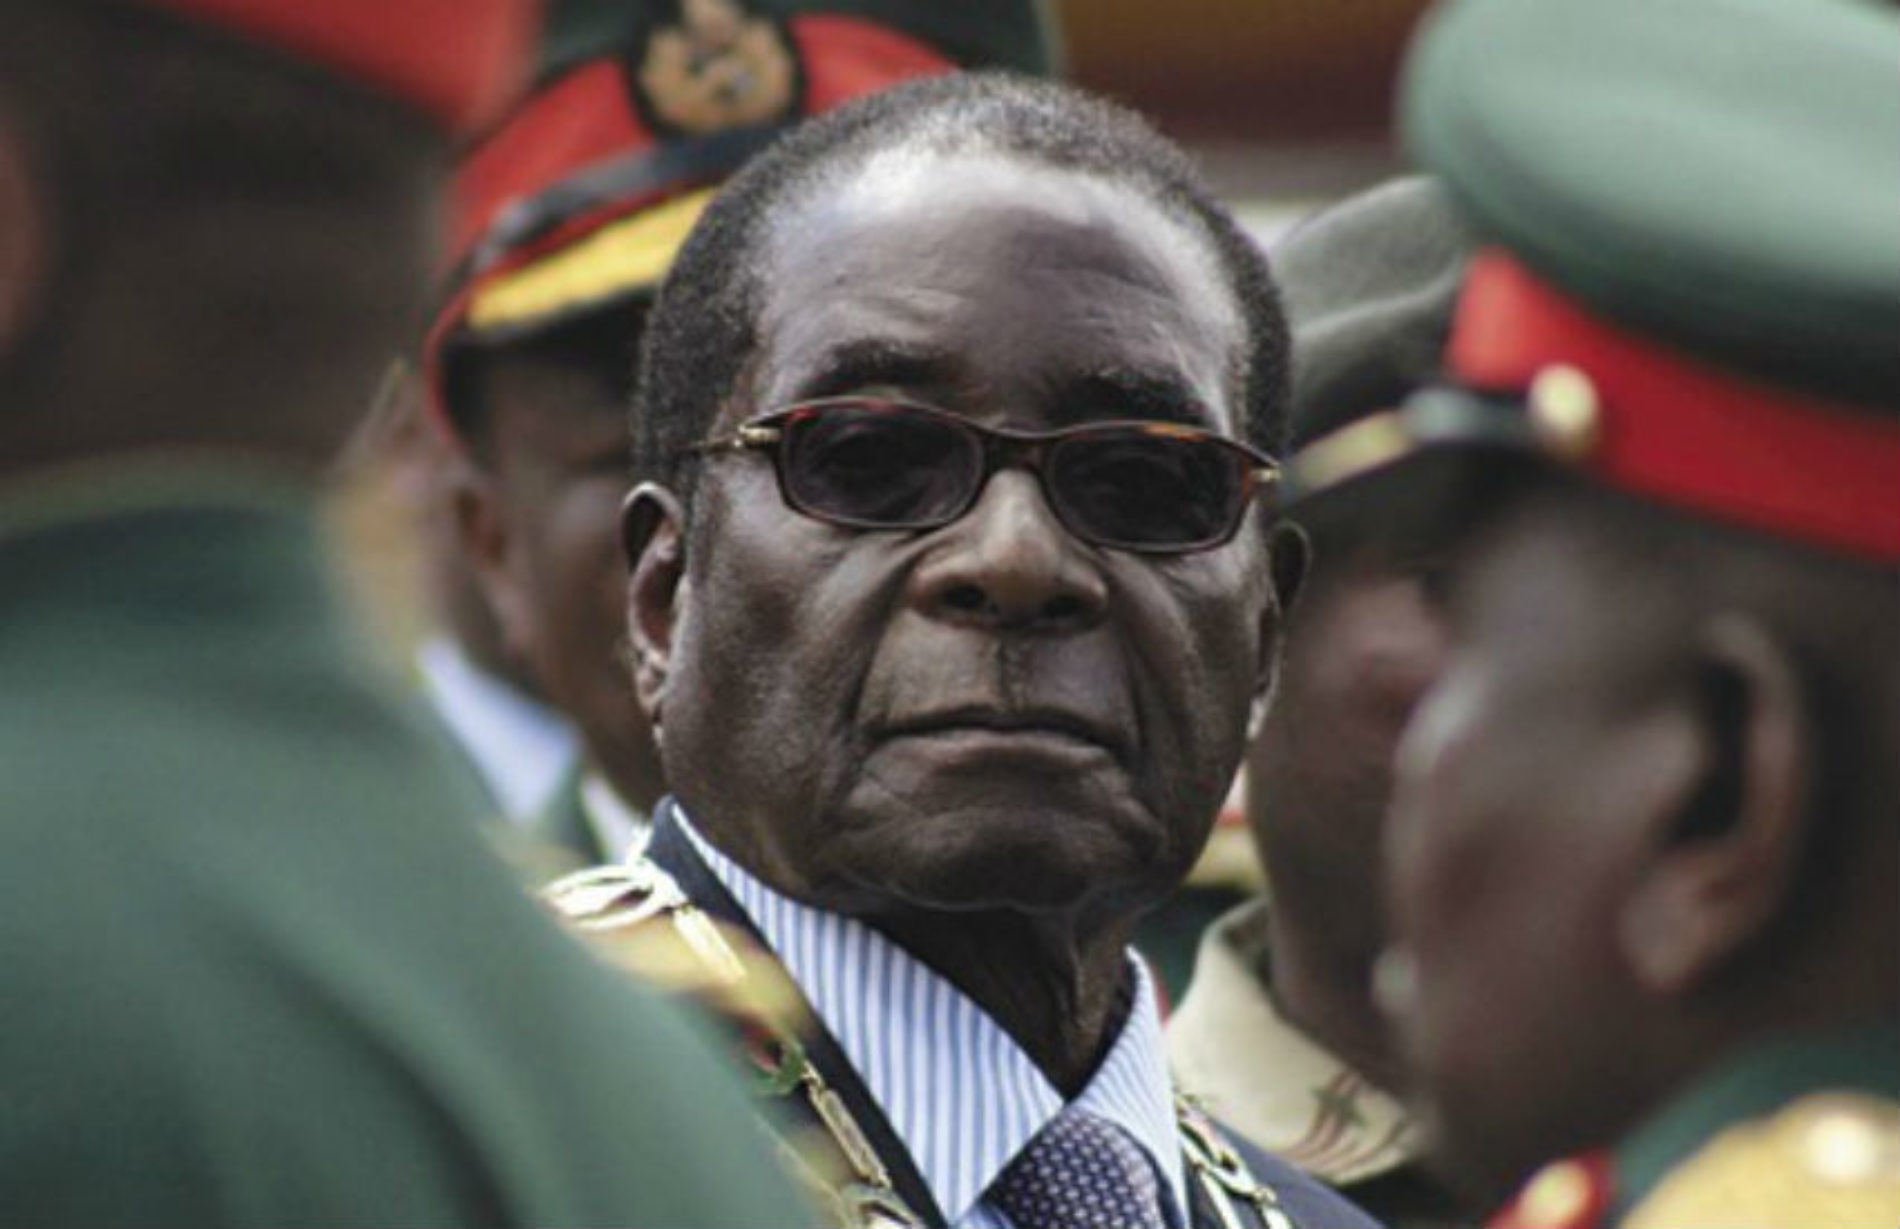 Robert Mugabe's Goodwill Ambassador Role Canceled